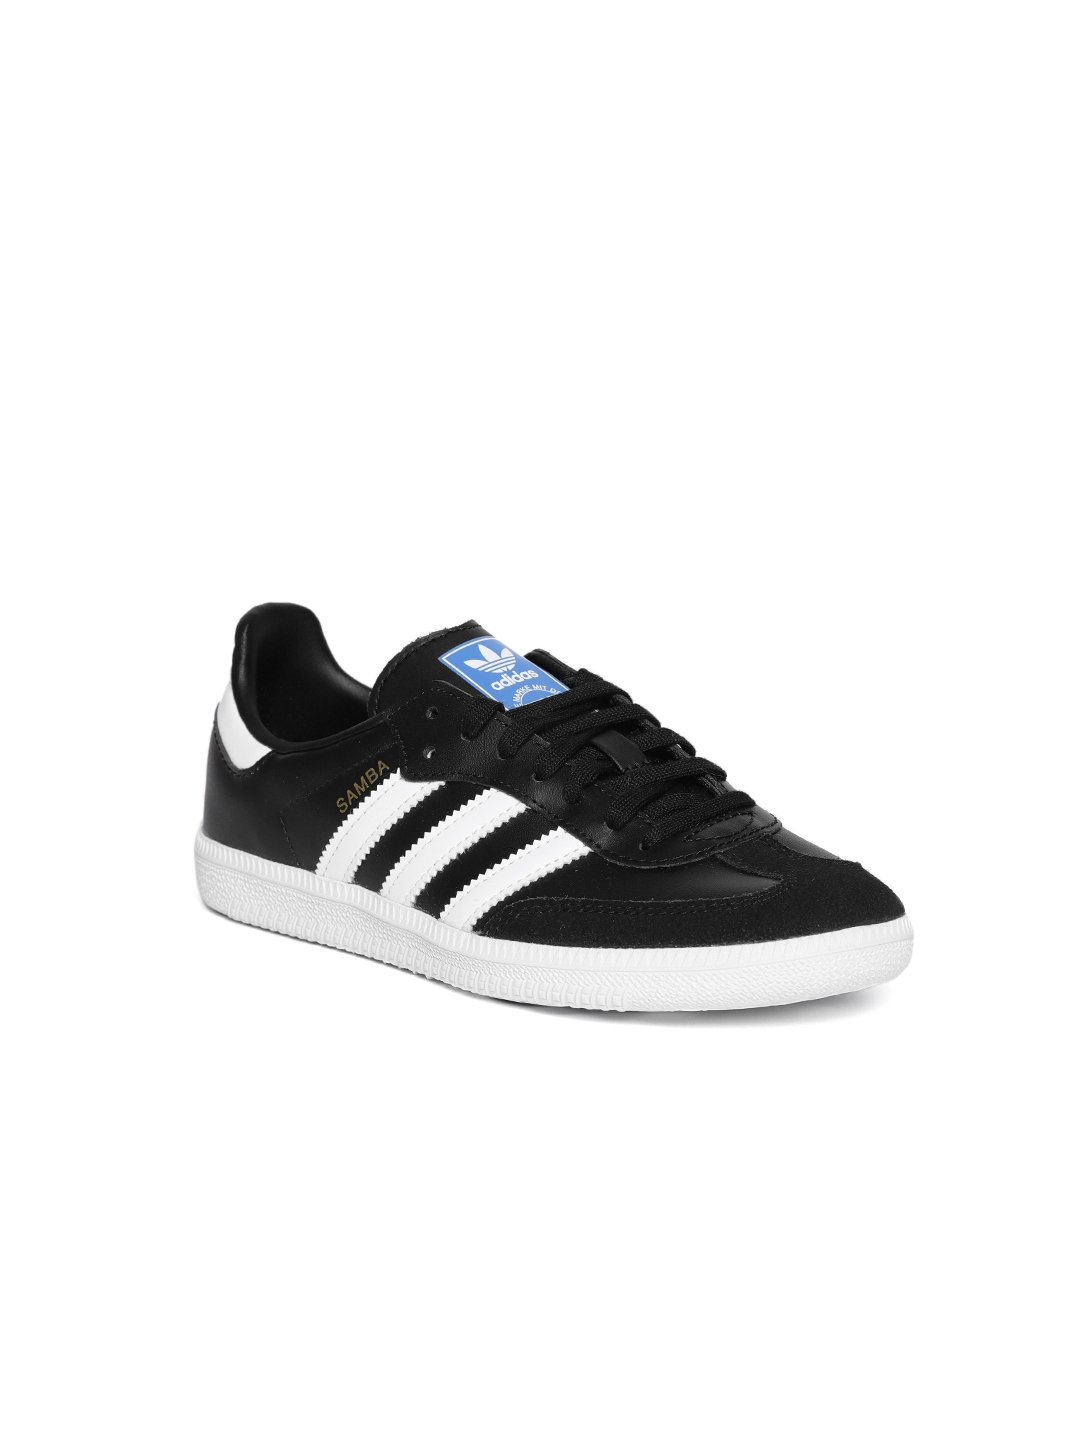 Buy Adidas Originals Kids Black Samba OG J Leather Sneakers - Casual ... f8c34c12a